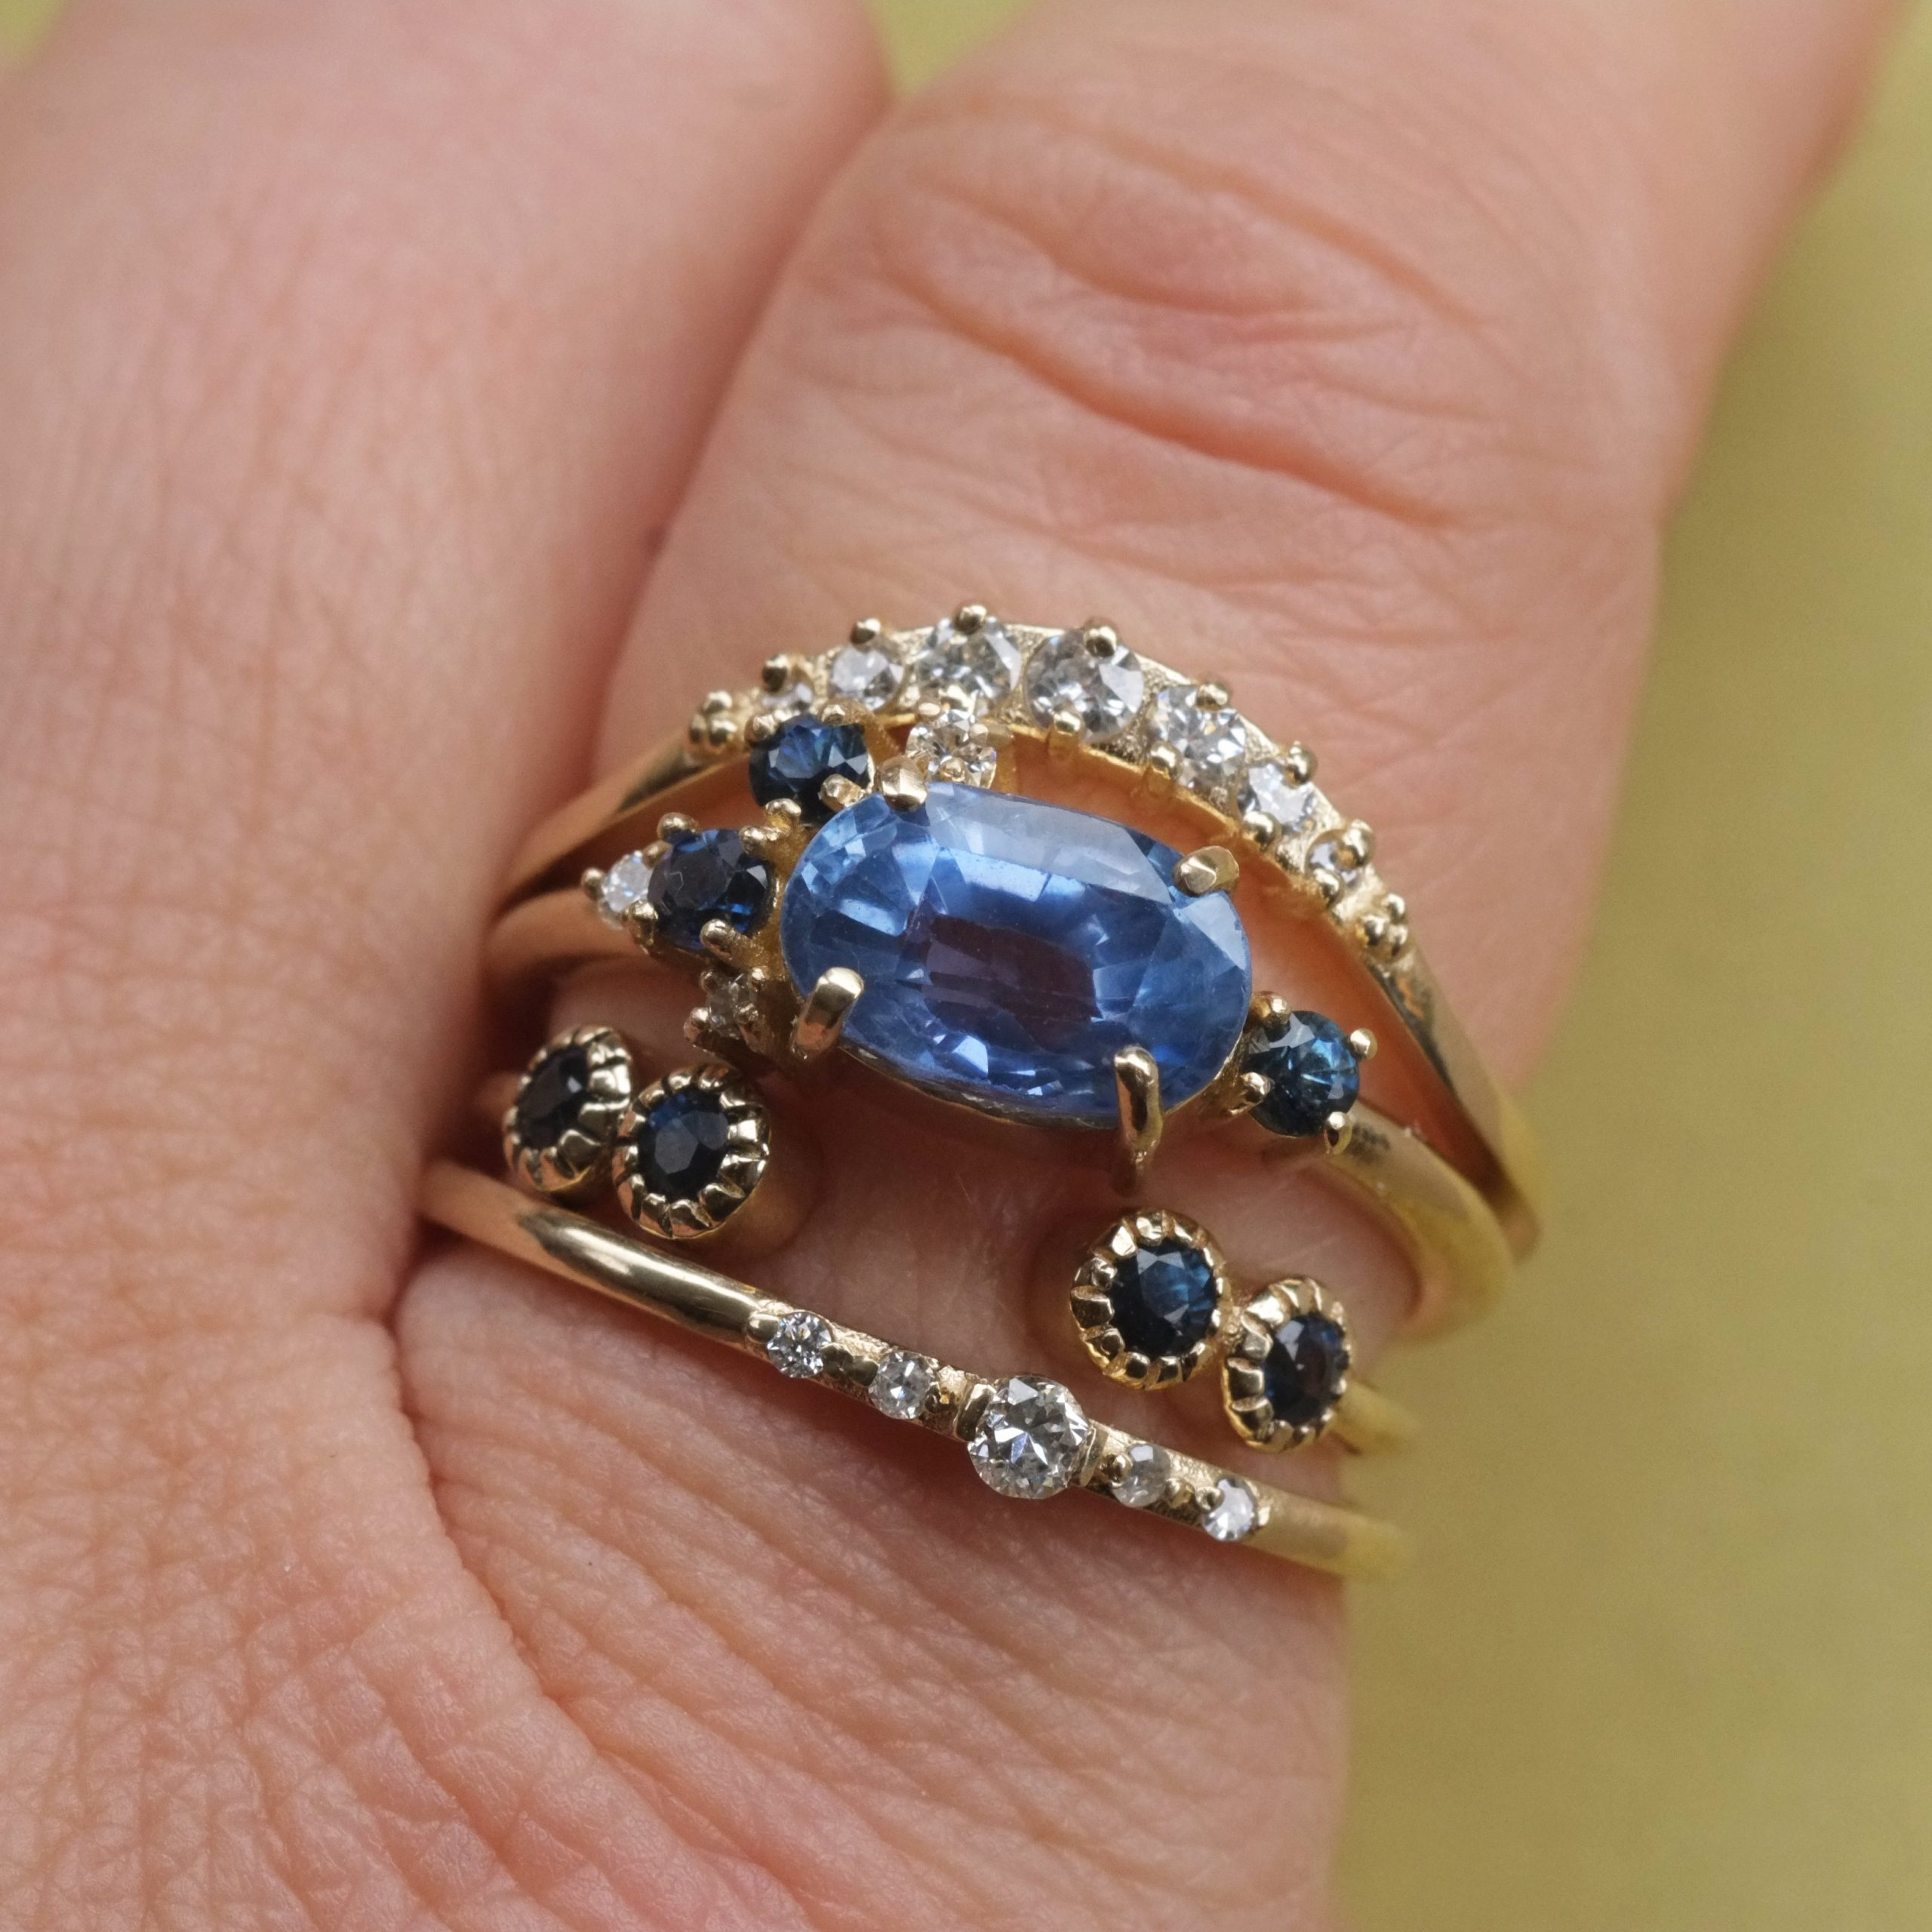 Delicate Diamond and Sapphire Stackable Rings